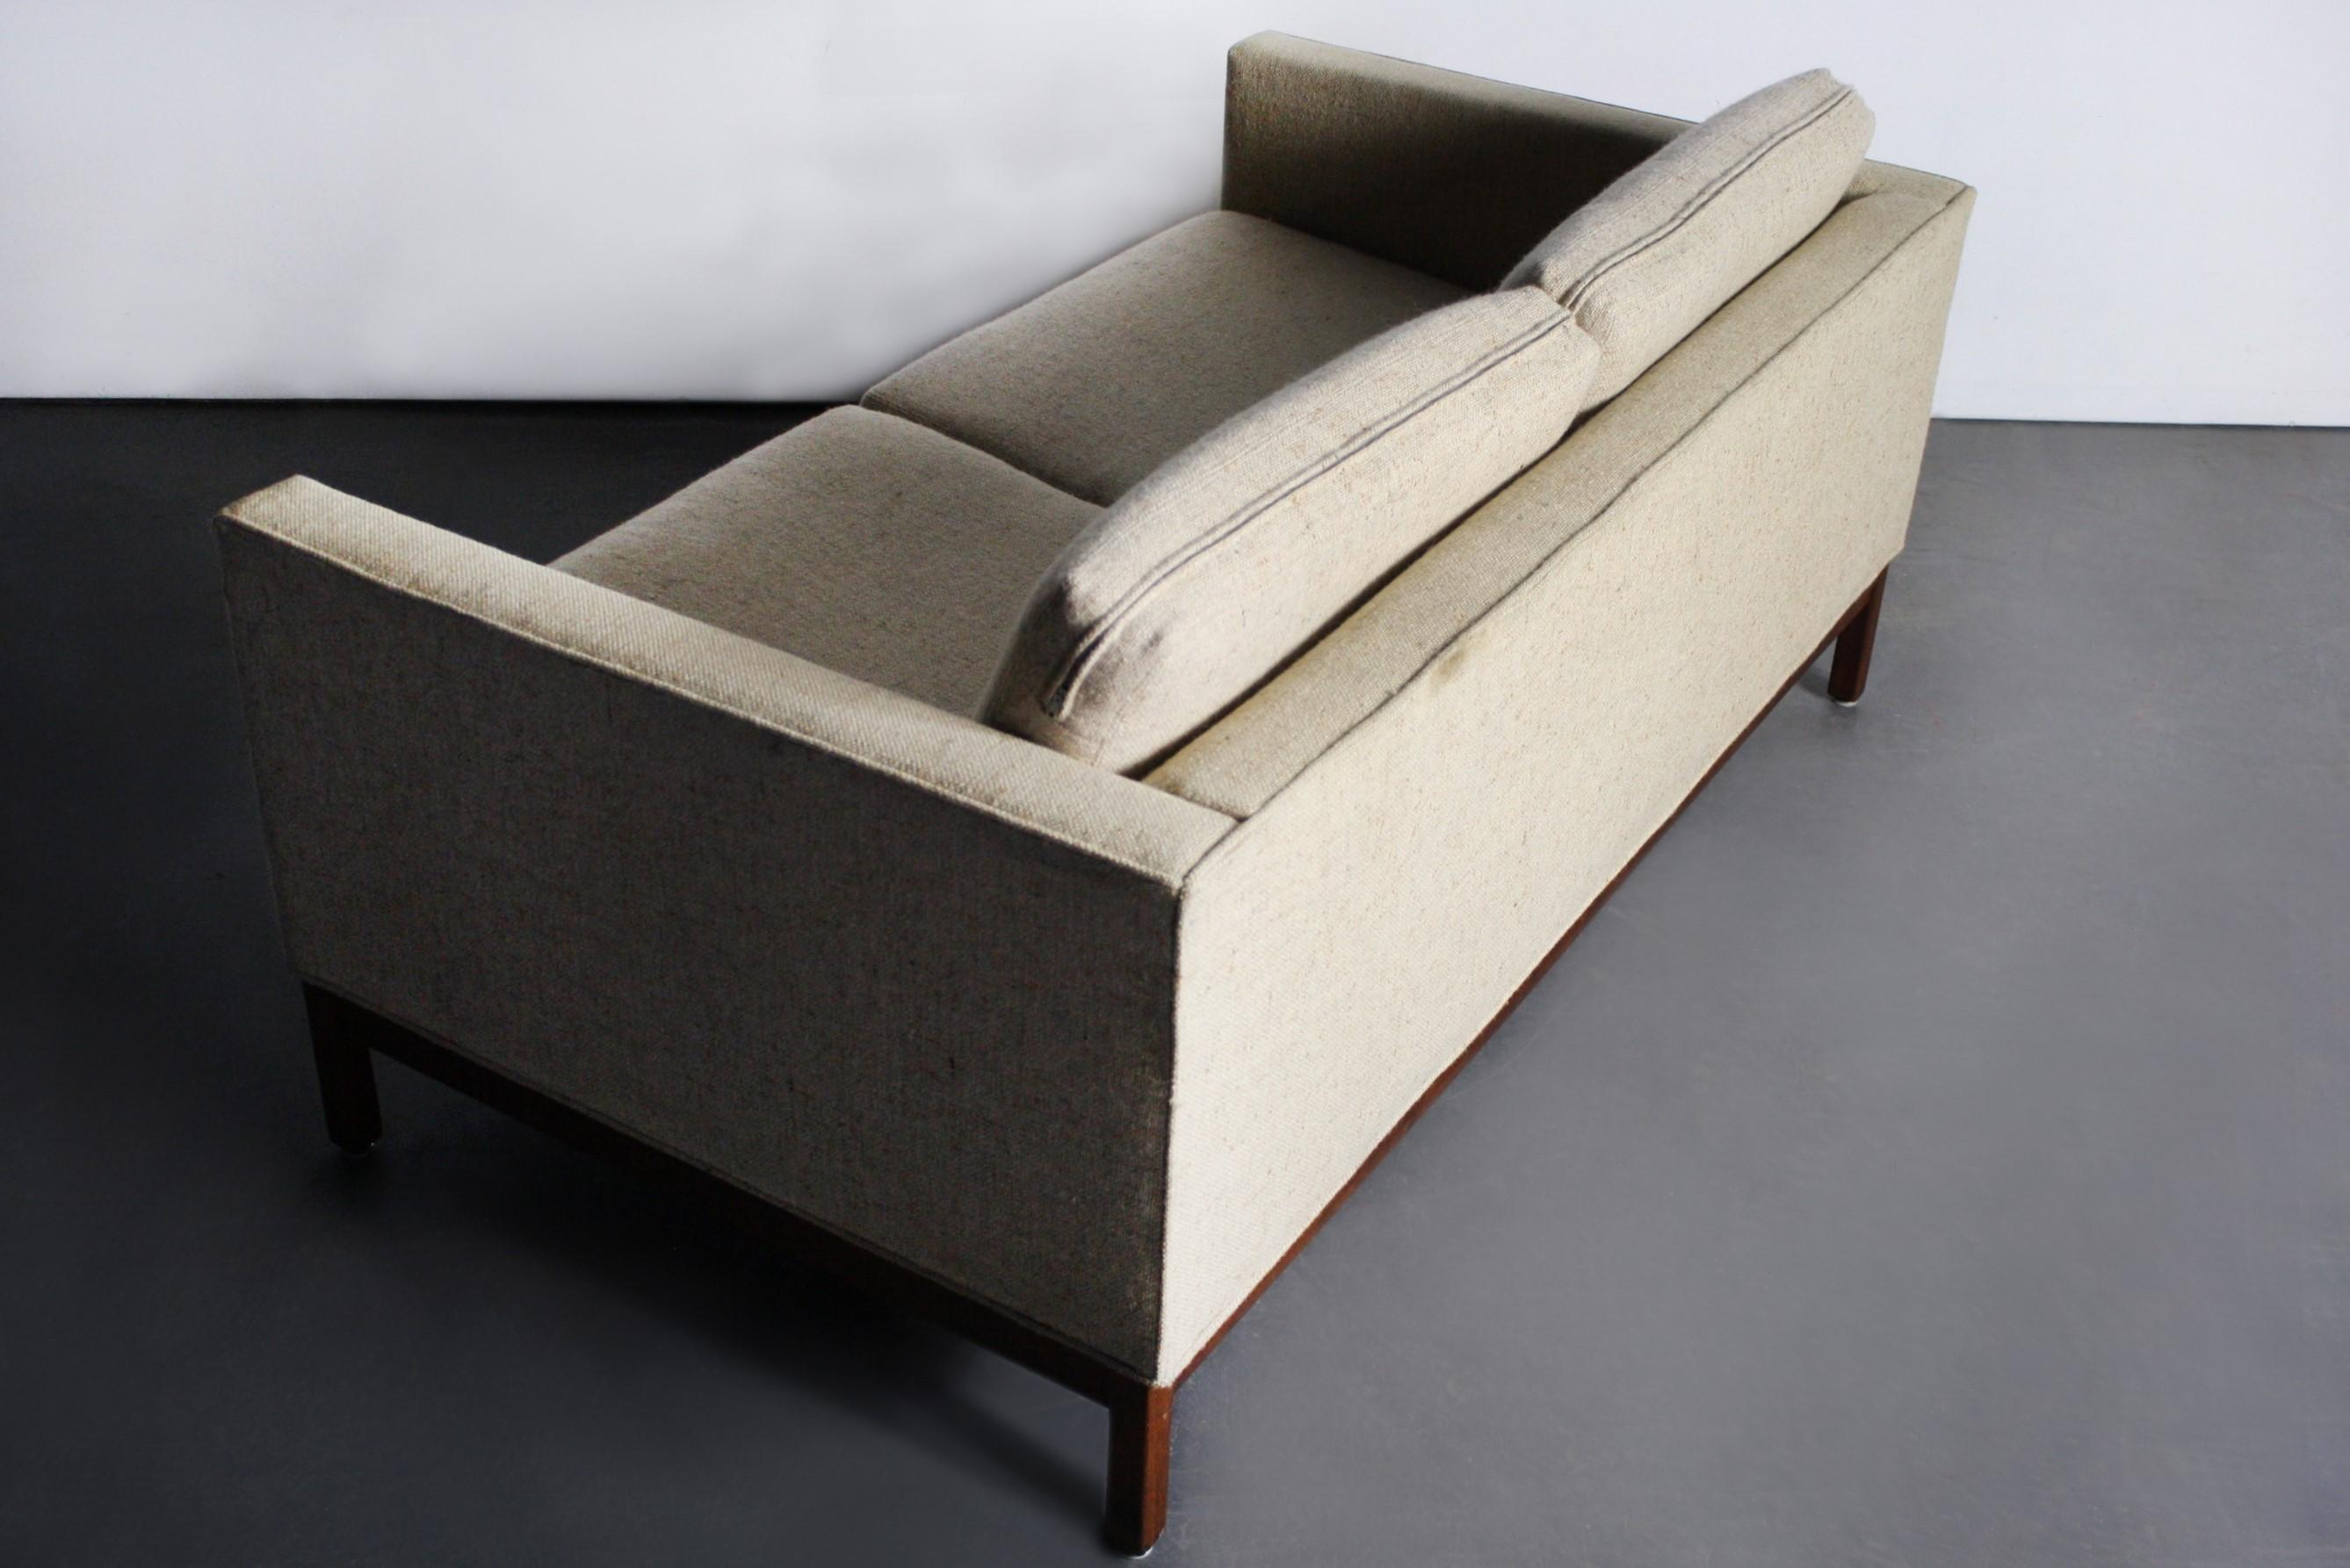 Mid Century Modern Loveseat By Johnson Furniture Company   Image 3 Of 3